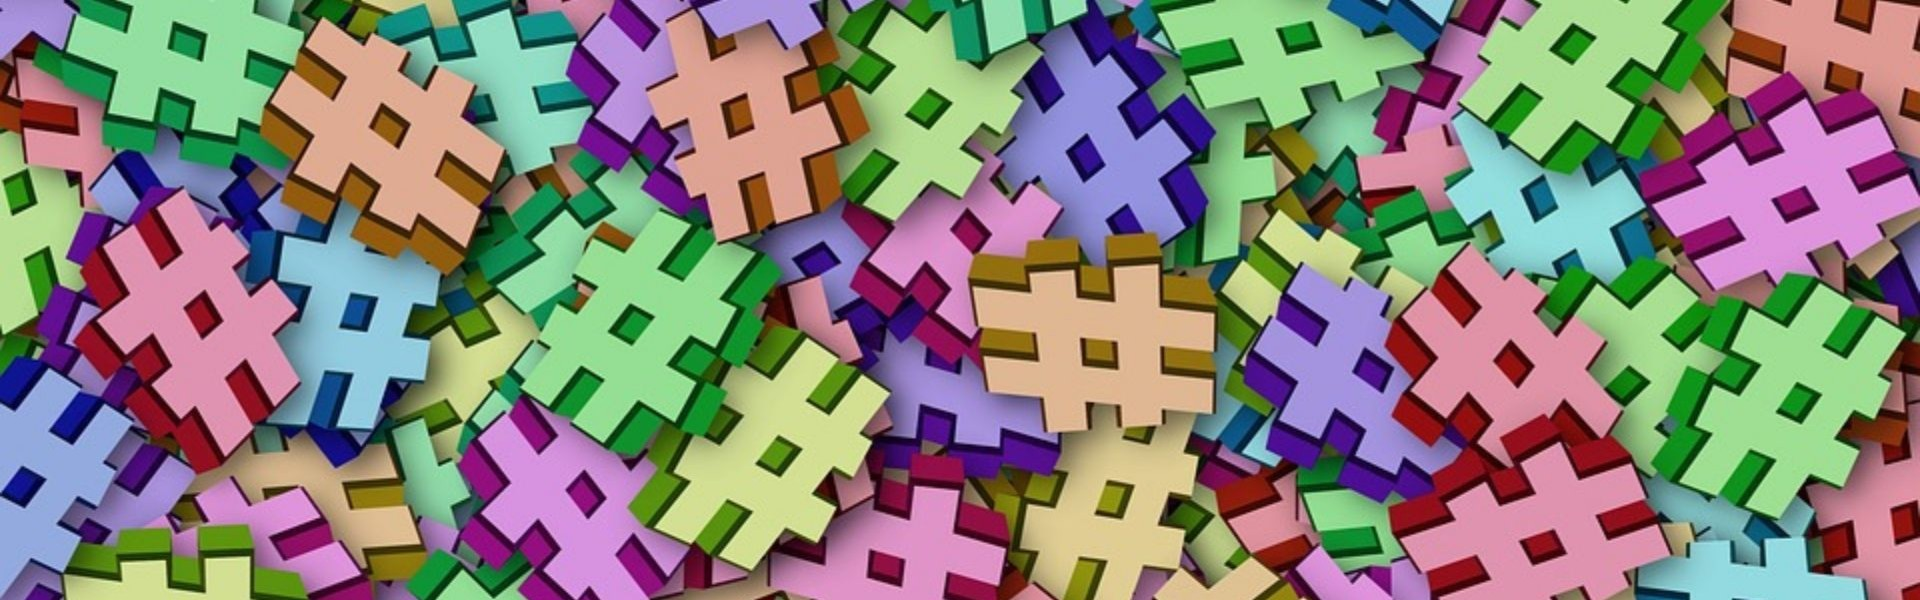 how to search hashtags on LinkedIn